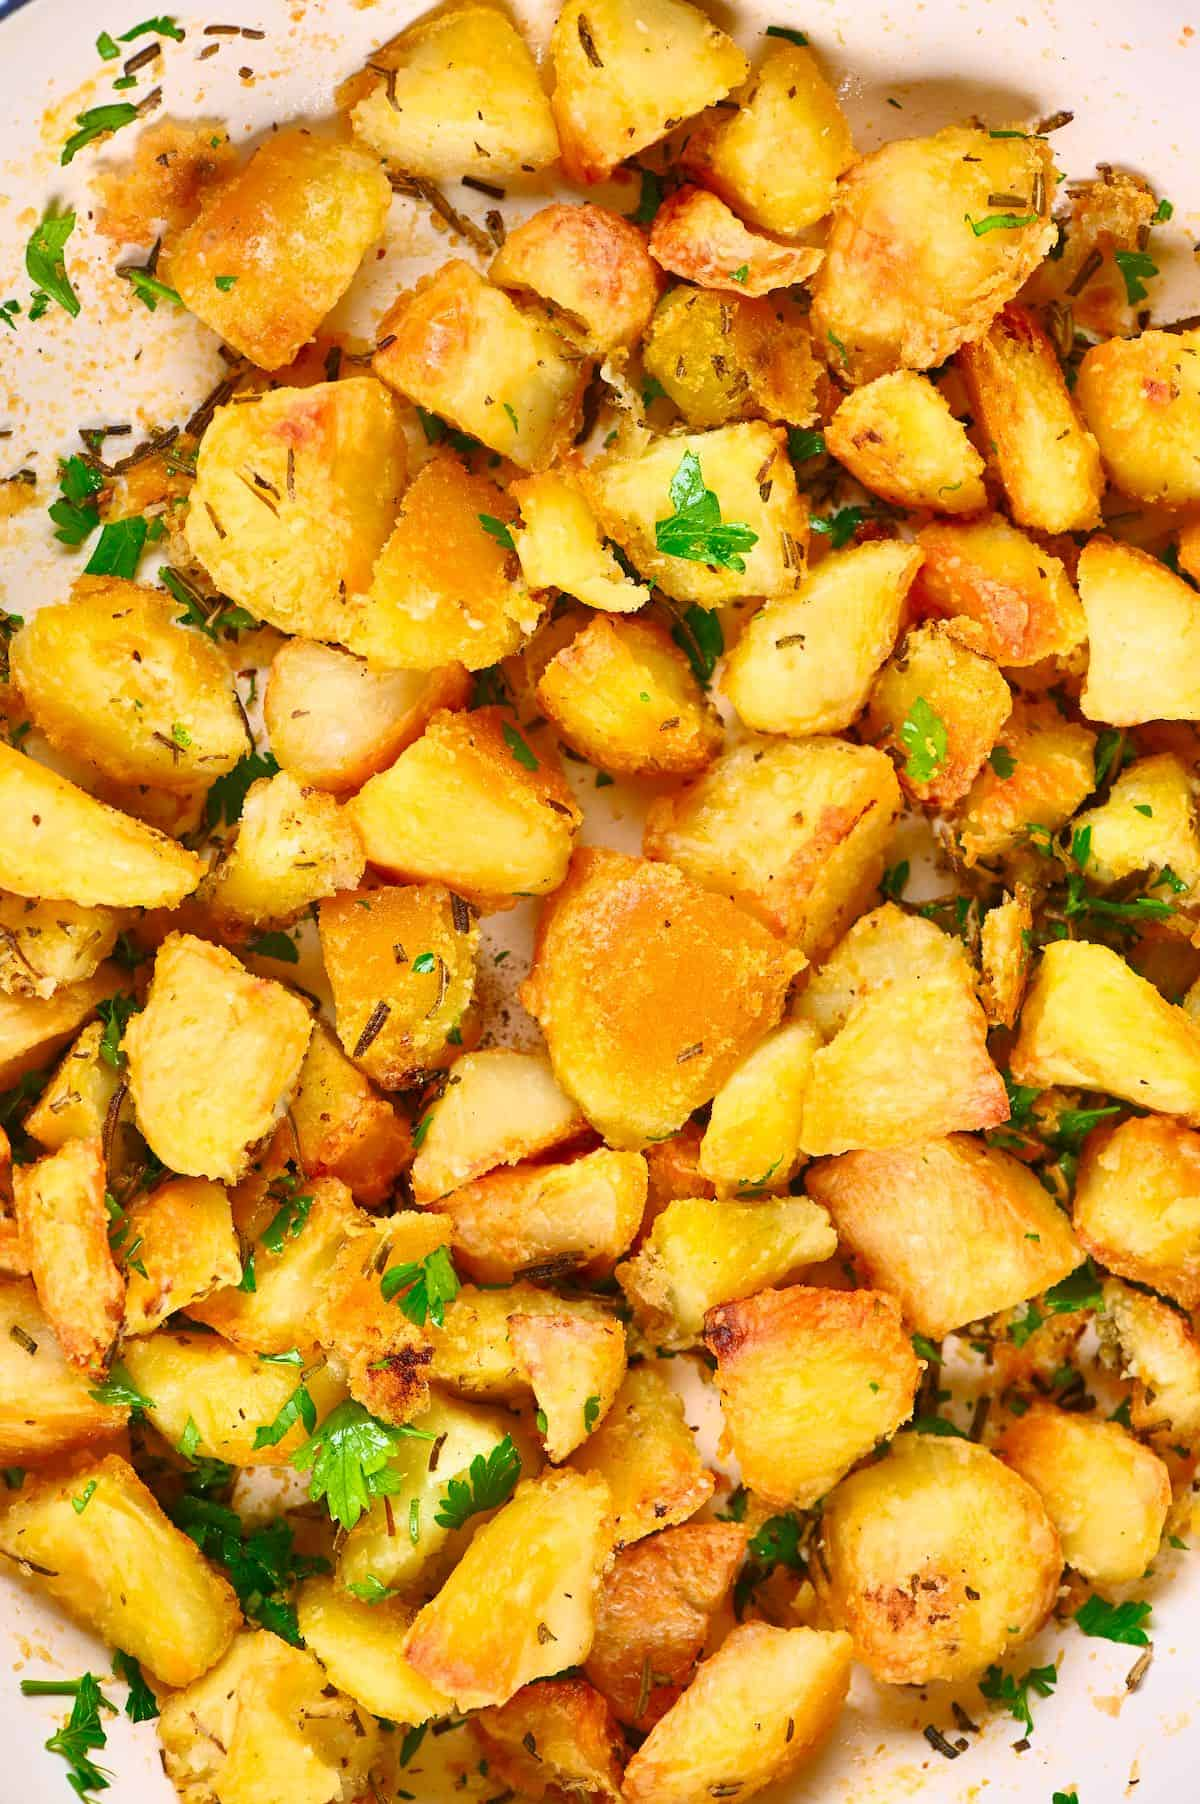 Close up of Roasted Potatoes